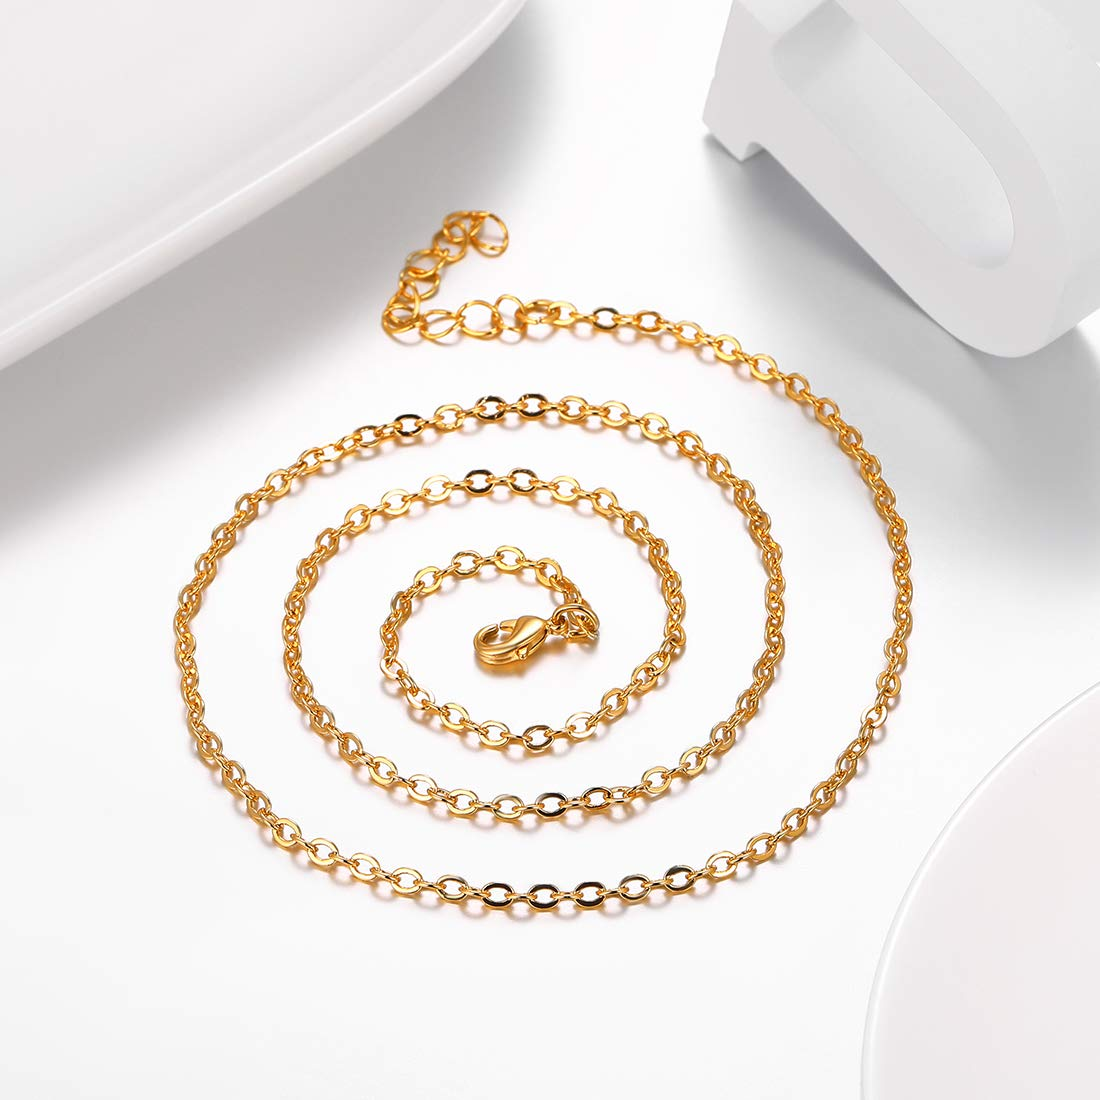 18-30 Available U7 Platinum//Ion-Plating Black//Rose Gold 18K Gold Plated Cable Chain Necklace 2MM